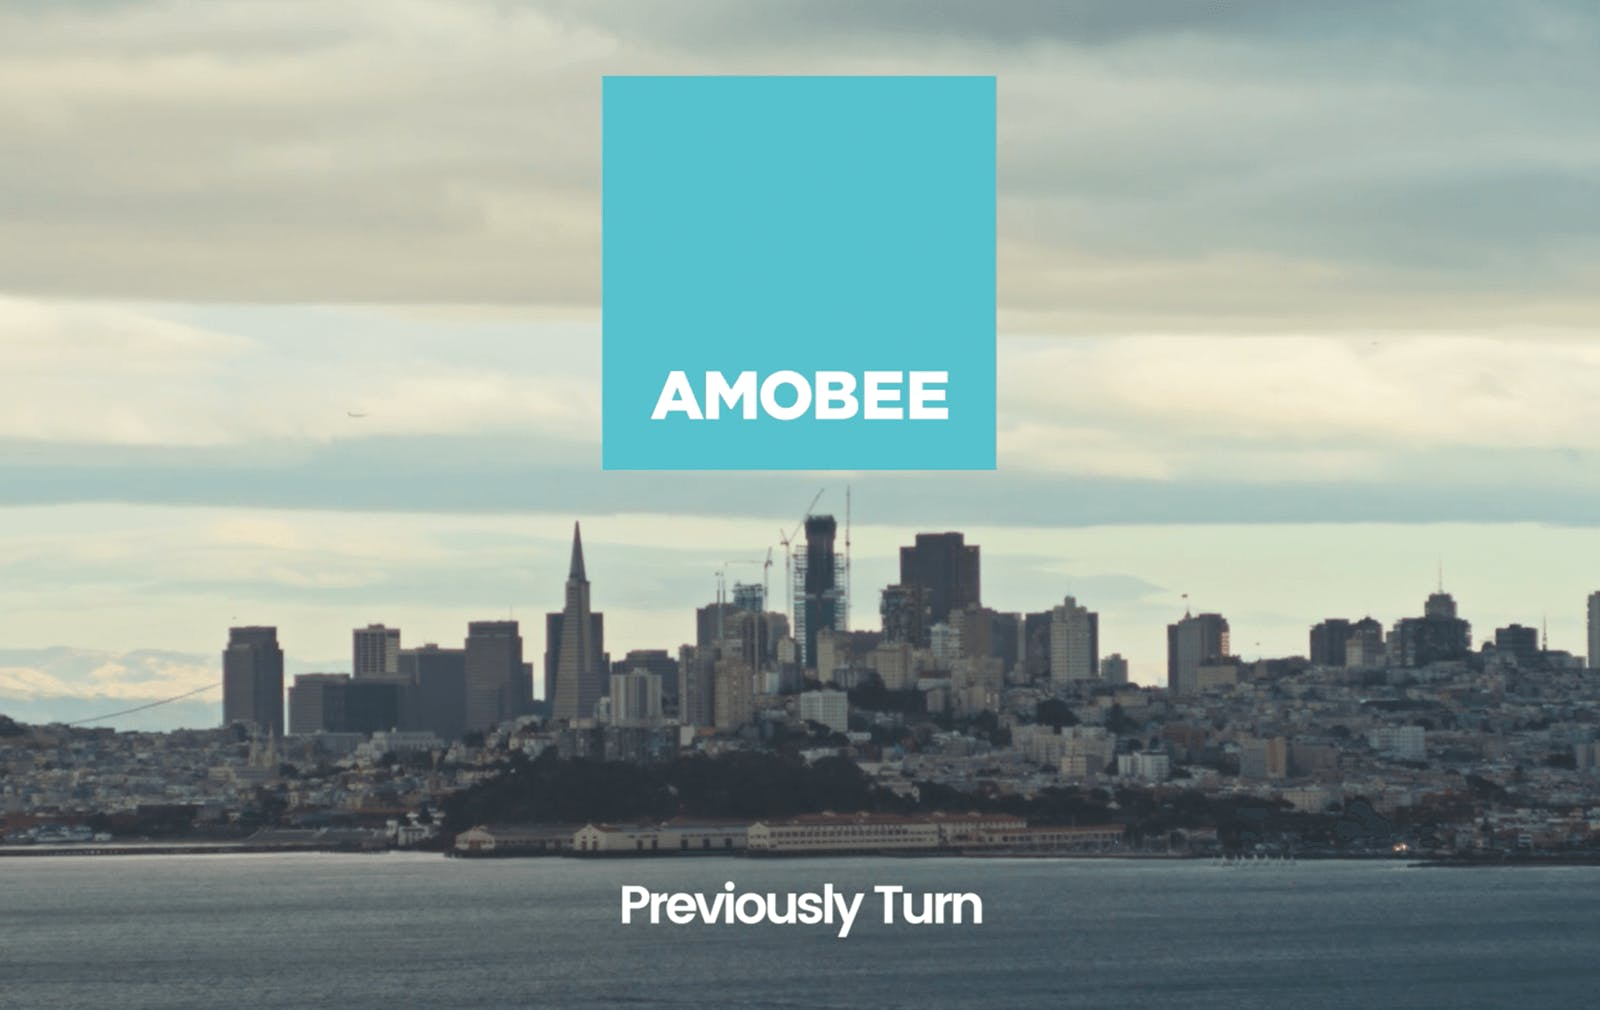 Progressive Partnership Stories – Amobee (Formerly Turn)